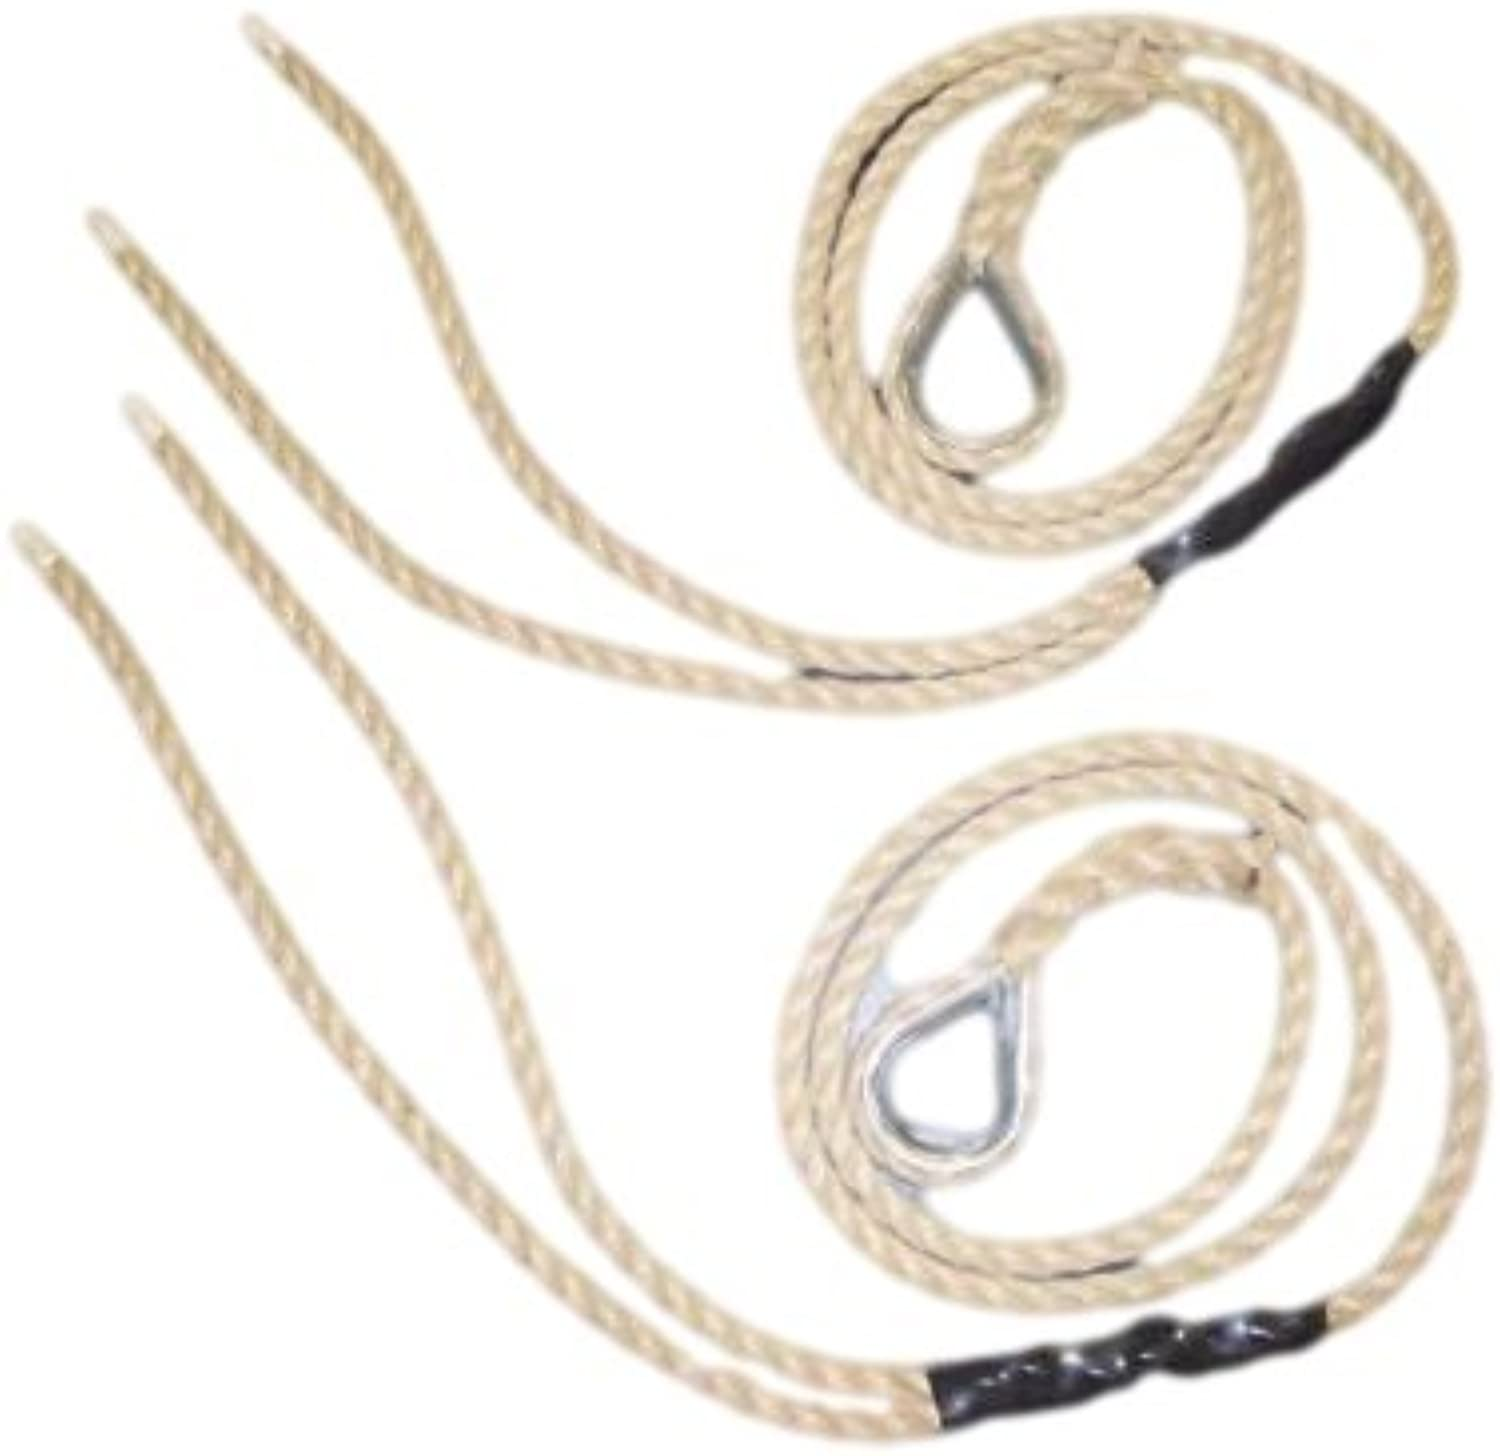 RopeServices UK 12Mm Poly Hemp Swing Ropes With Steel Thimbles